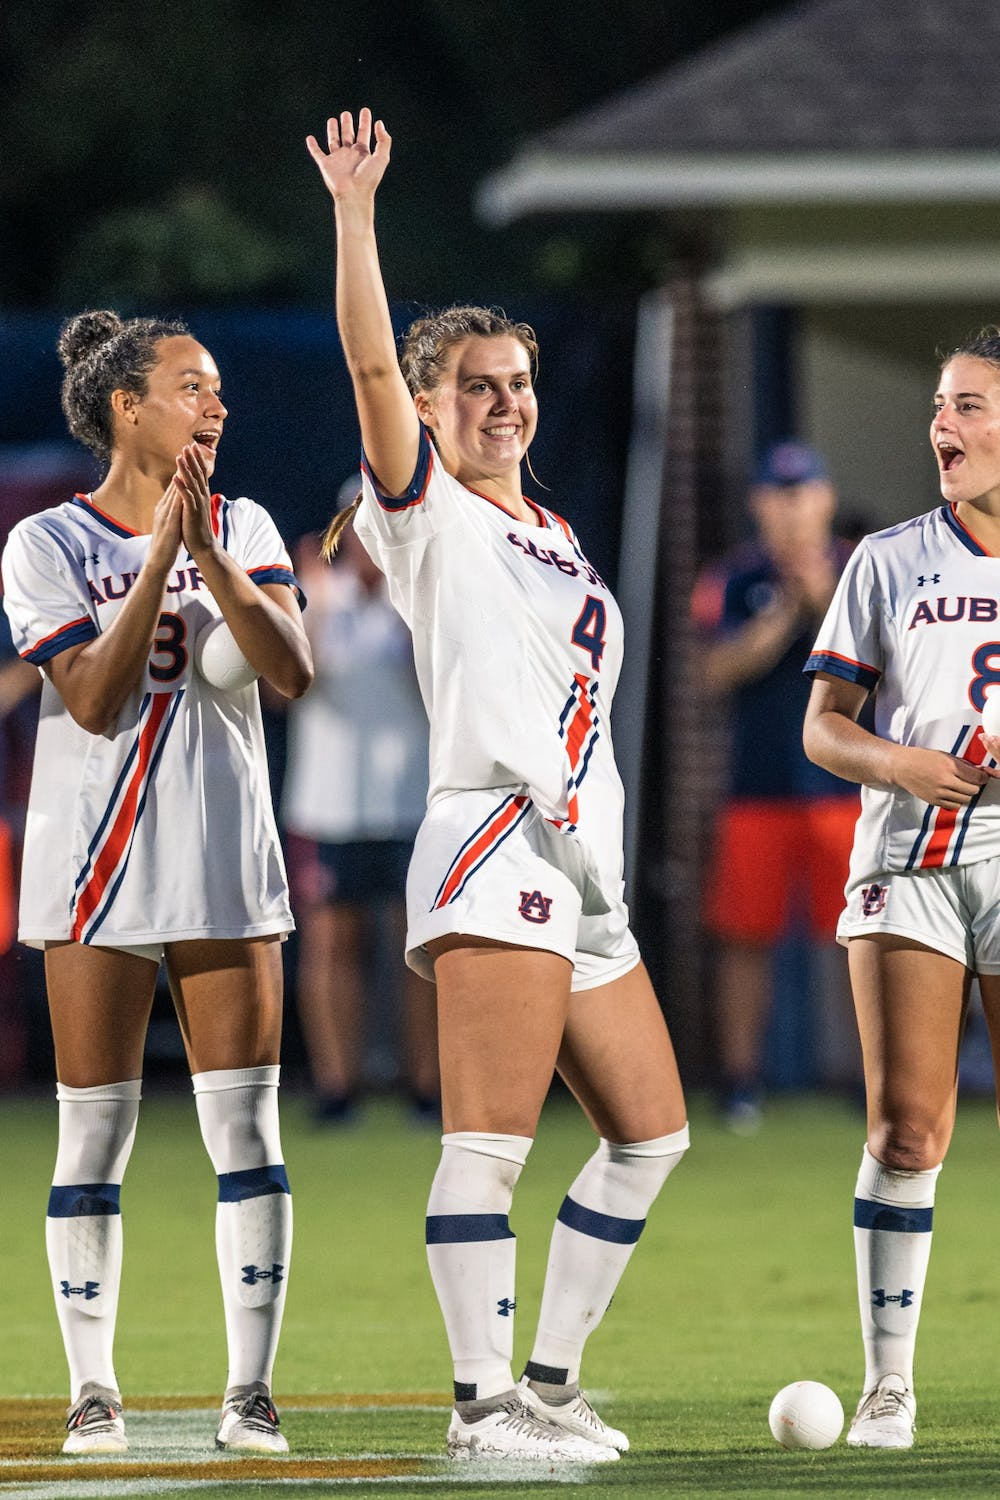 Haddock earns second SEC Offensive Player of the Week honor